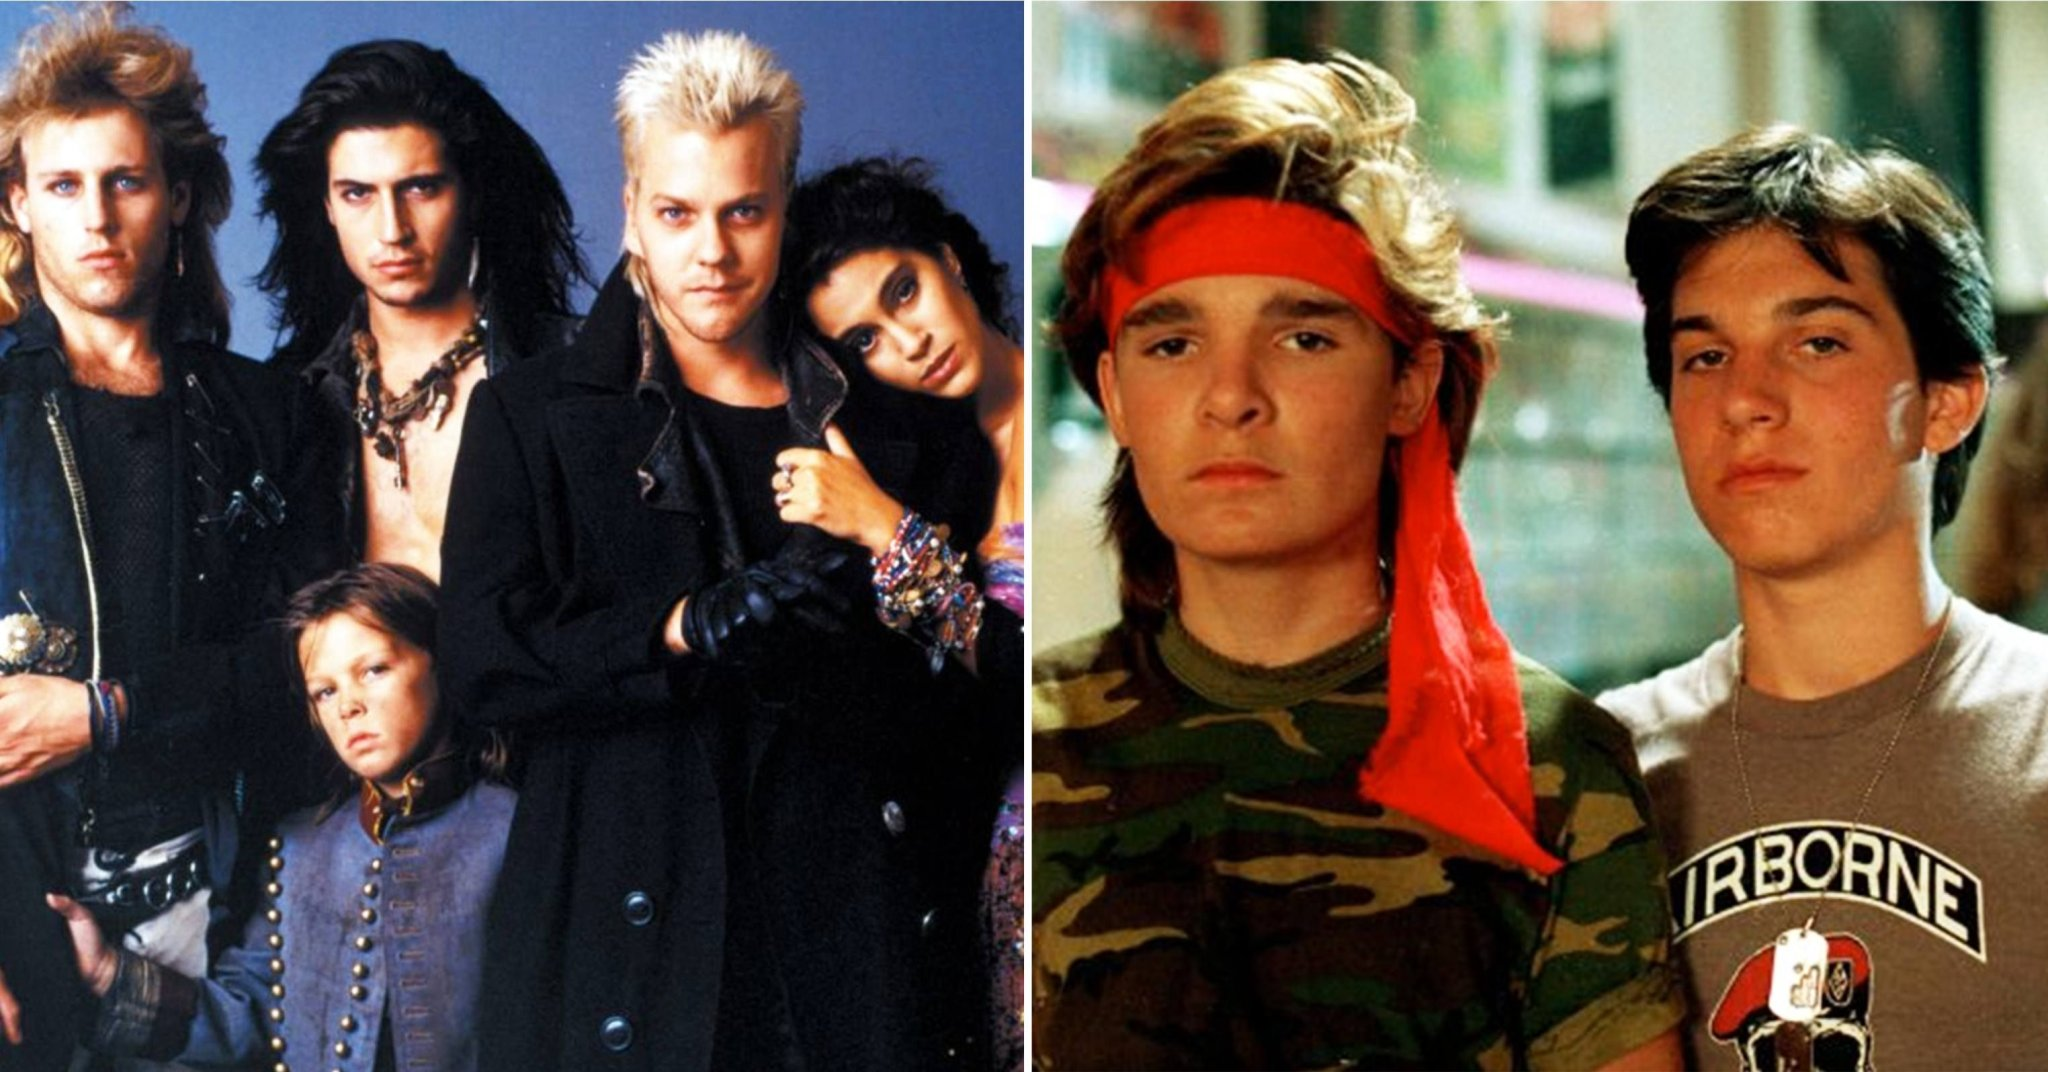 The Lost Boys: How Joel Schumacher Breathed New Life Into The Vampire Genre